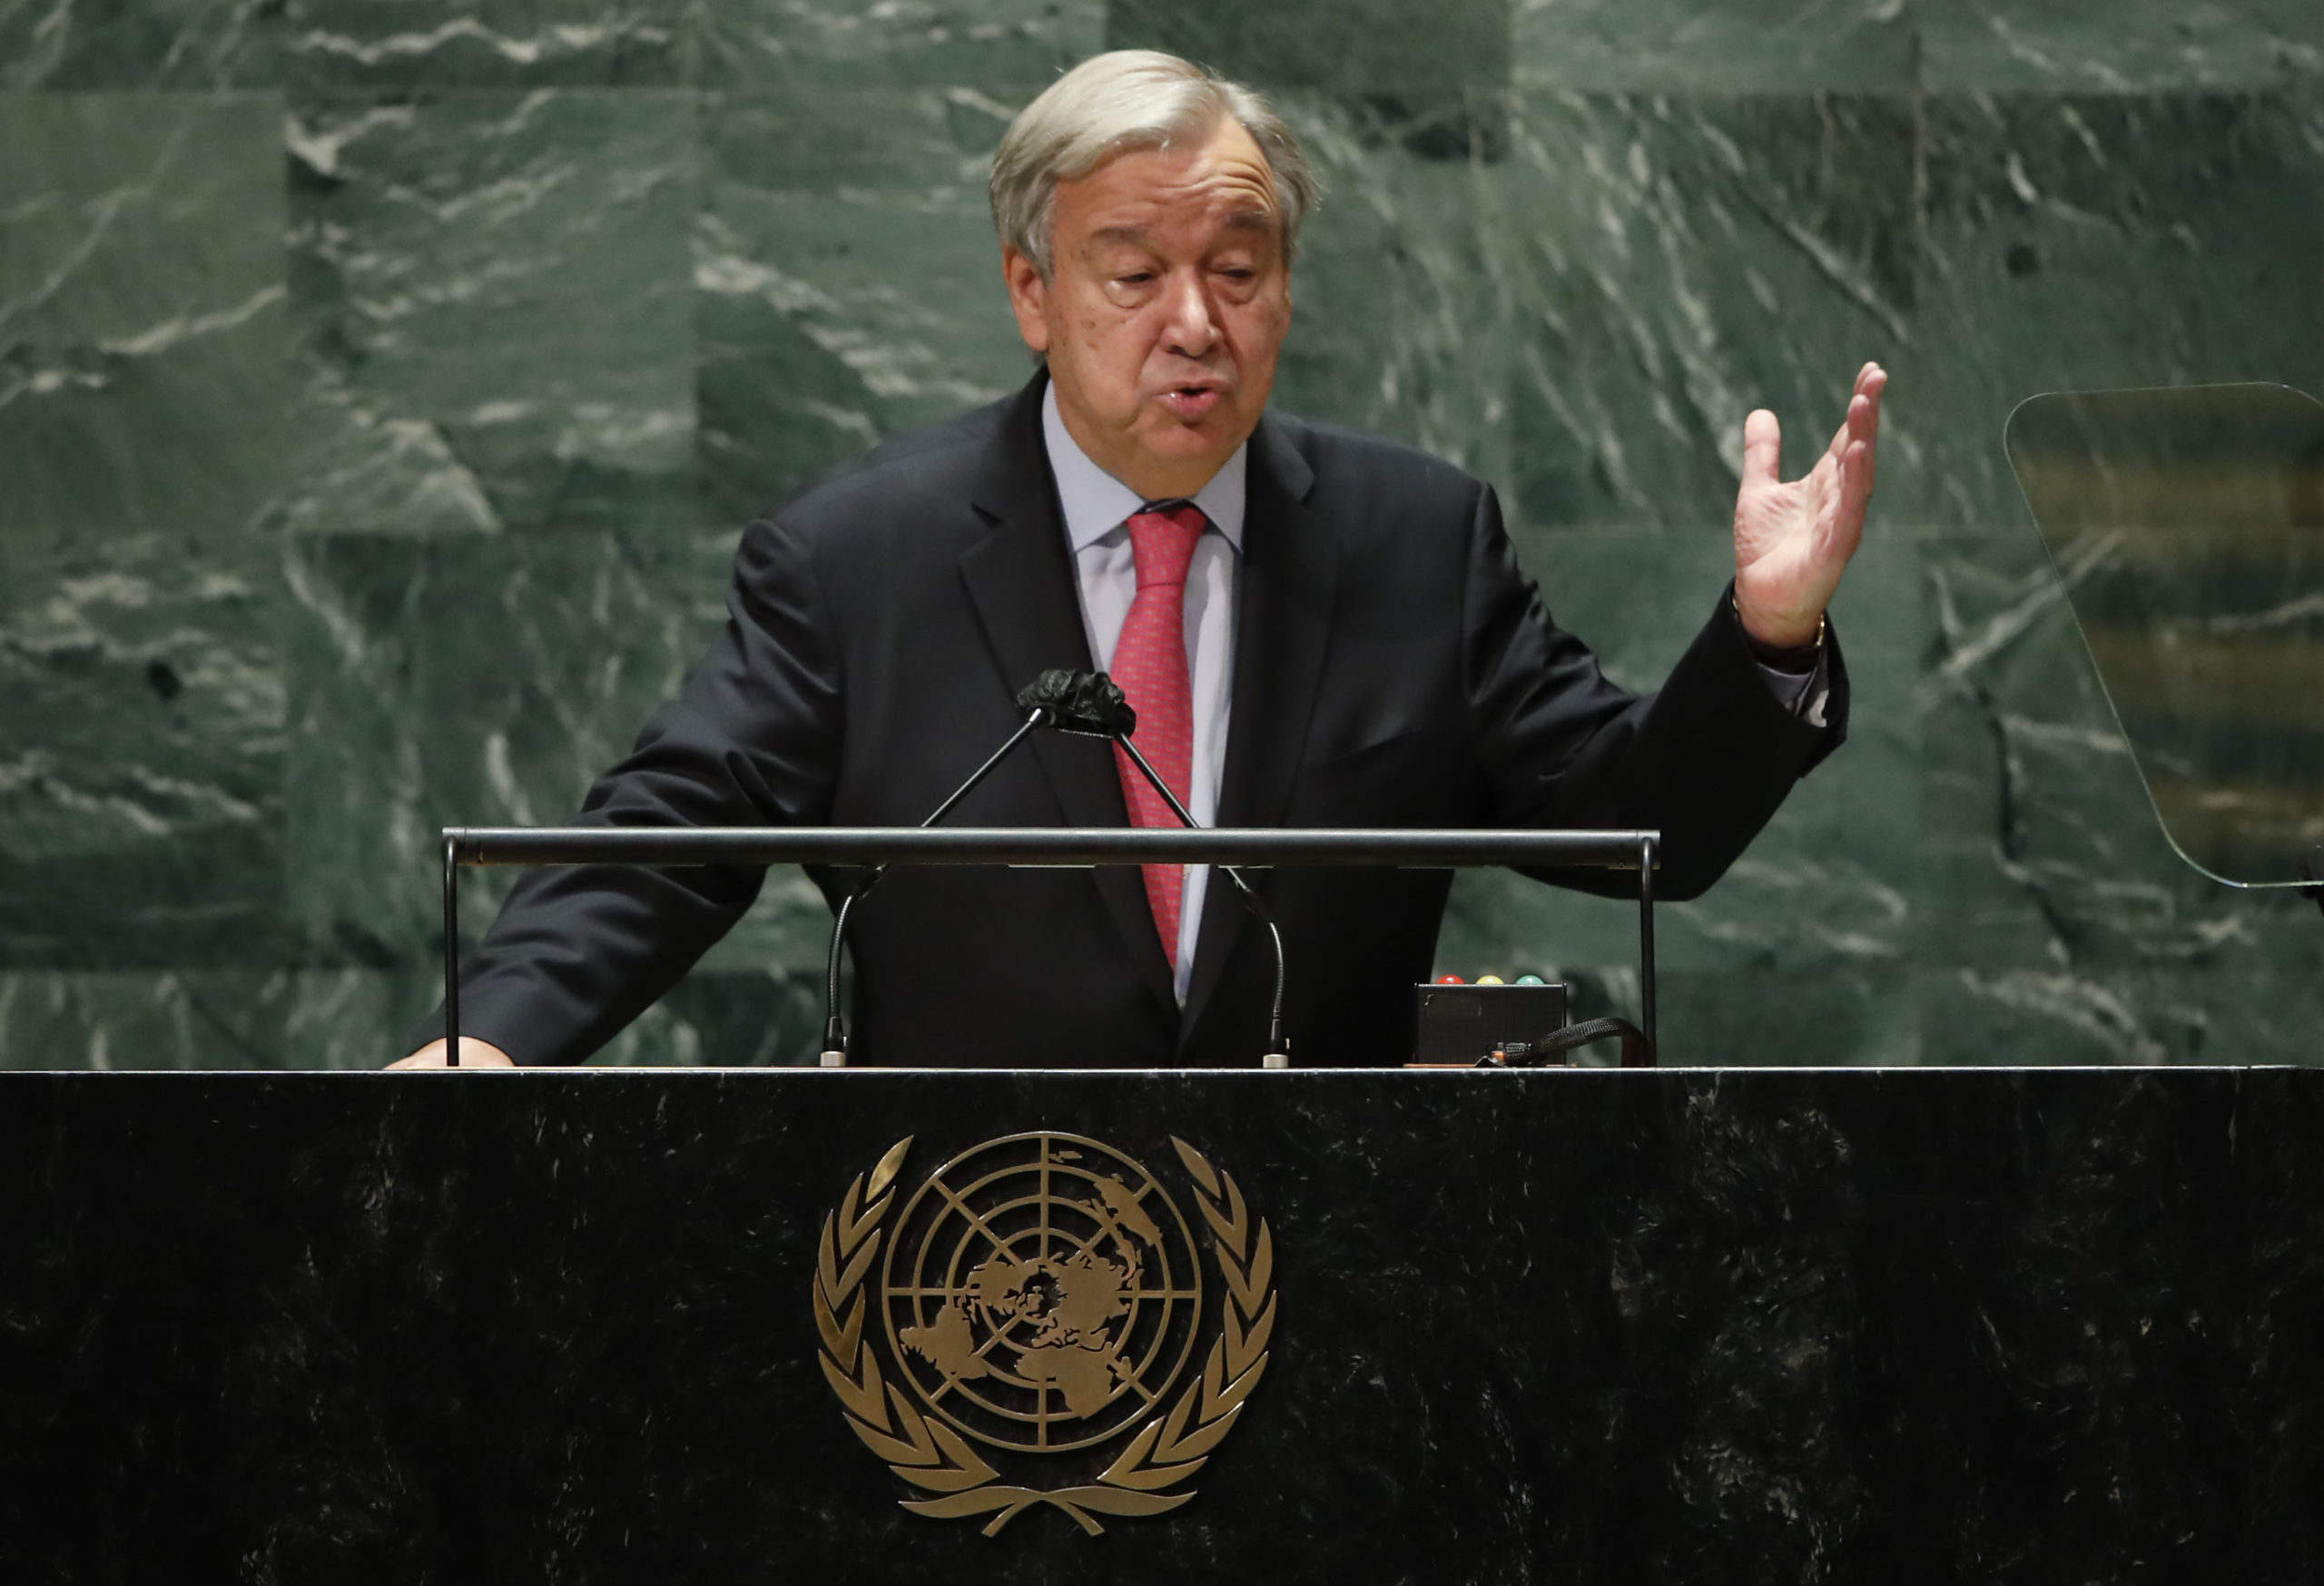 NEW YORK, NEW YORK - SEPTEMBER 21: United Nations Secretary-General Antonio Guterres addresses the 76th Session of the U.N. General Assembly on September 21, 2021 at U.N. headquarters in New York City. More than 100 heads of state or government are attending the session in person, although the size of delegations is smaller due to the Covid-19 pandemic. (Photo by Eduardo Munoz-Pool/Getty Images)